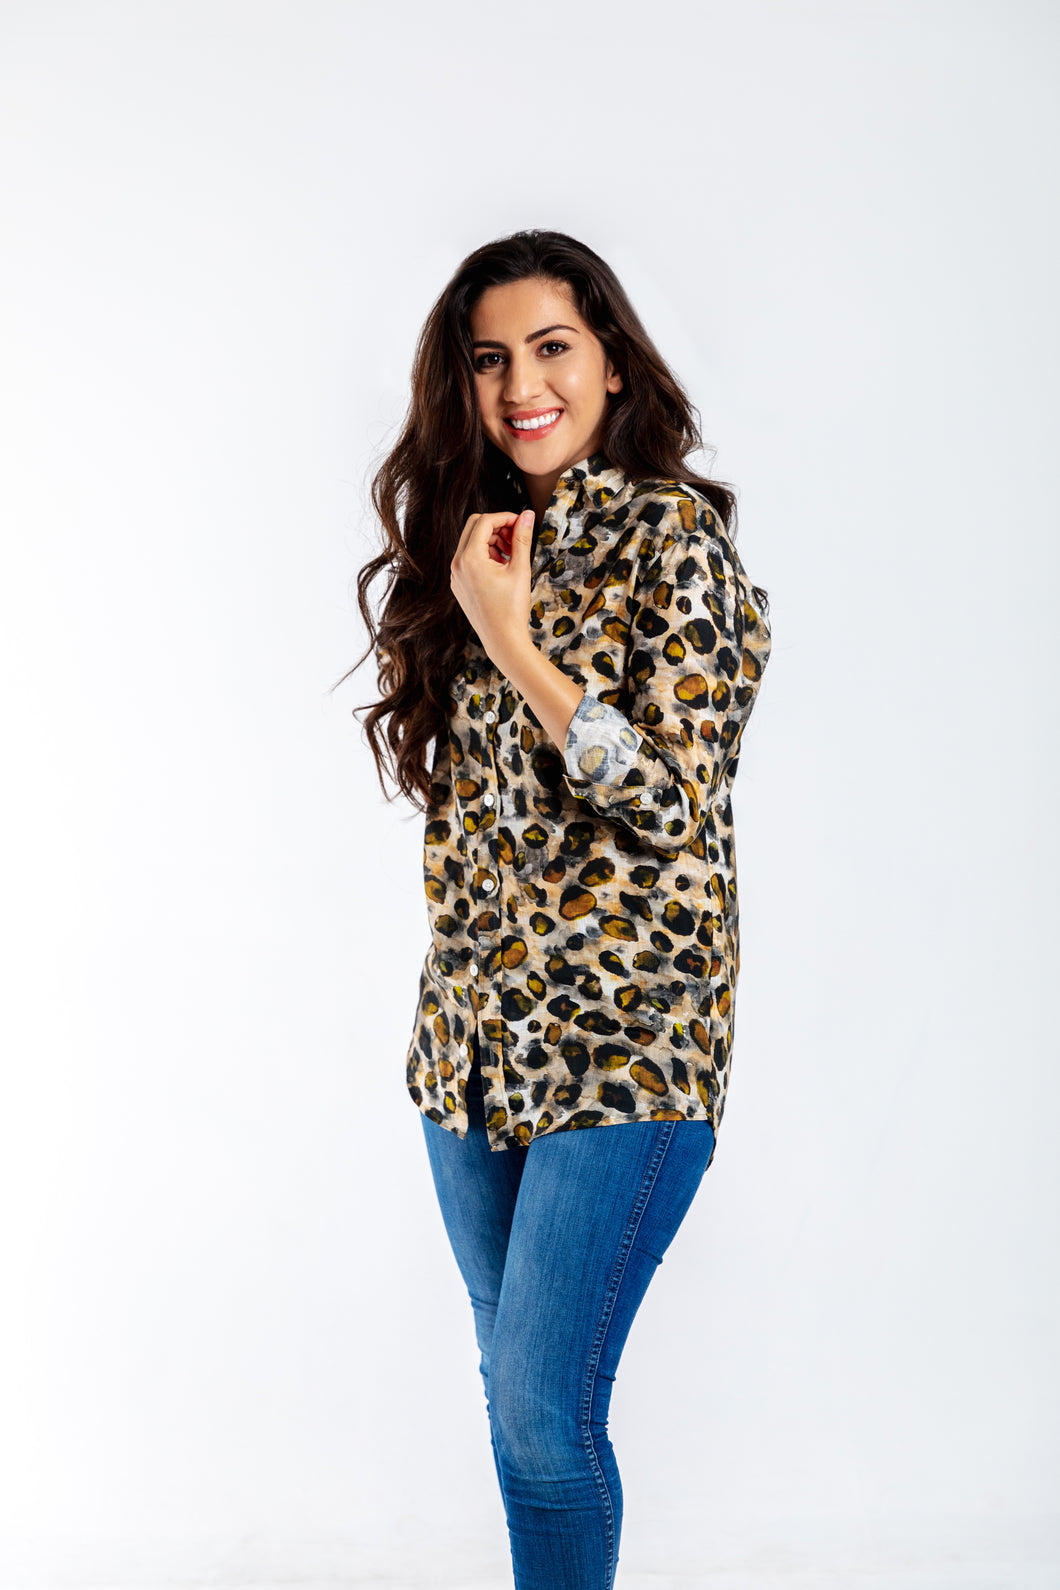 GIRLFRIEND SHIRT CHEETAH LINEN  ***Limited Edition